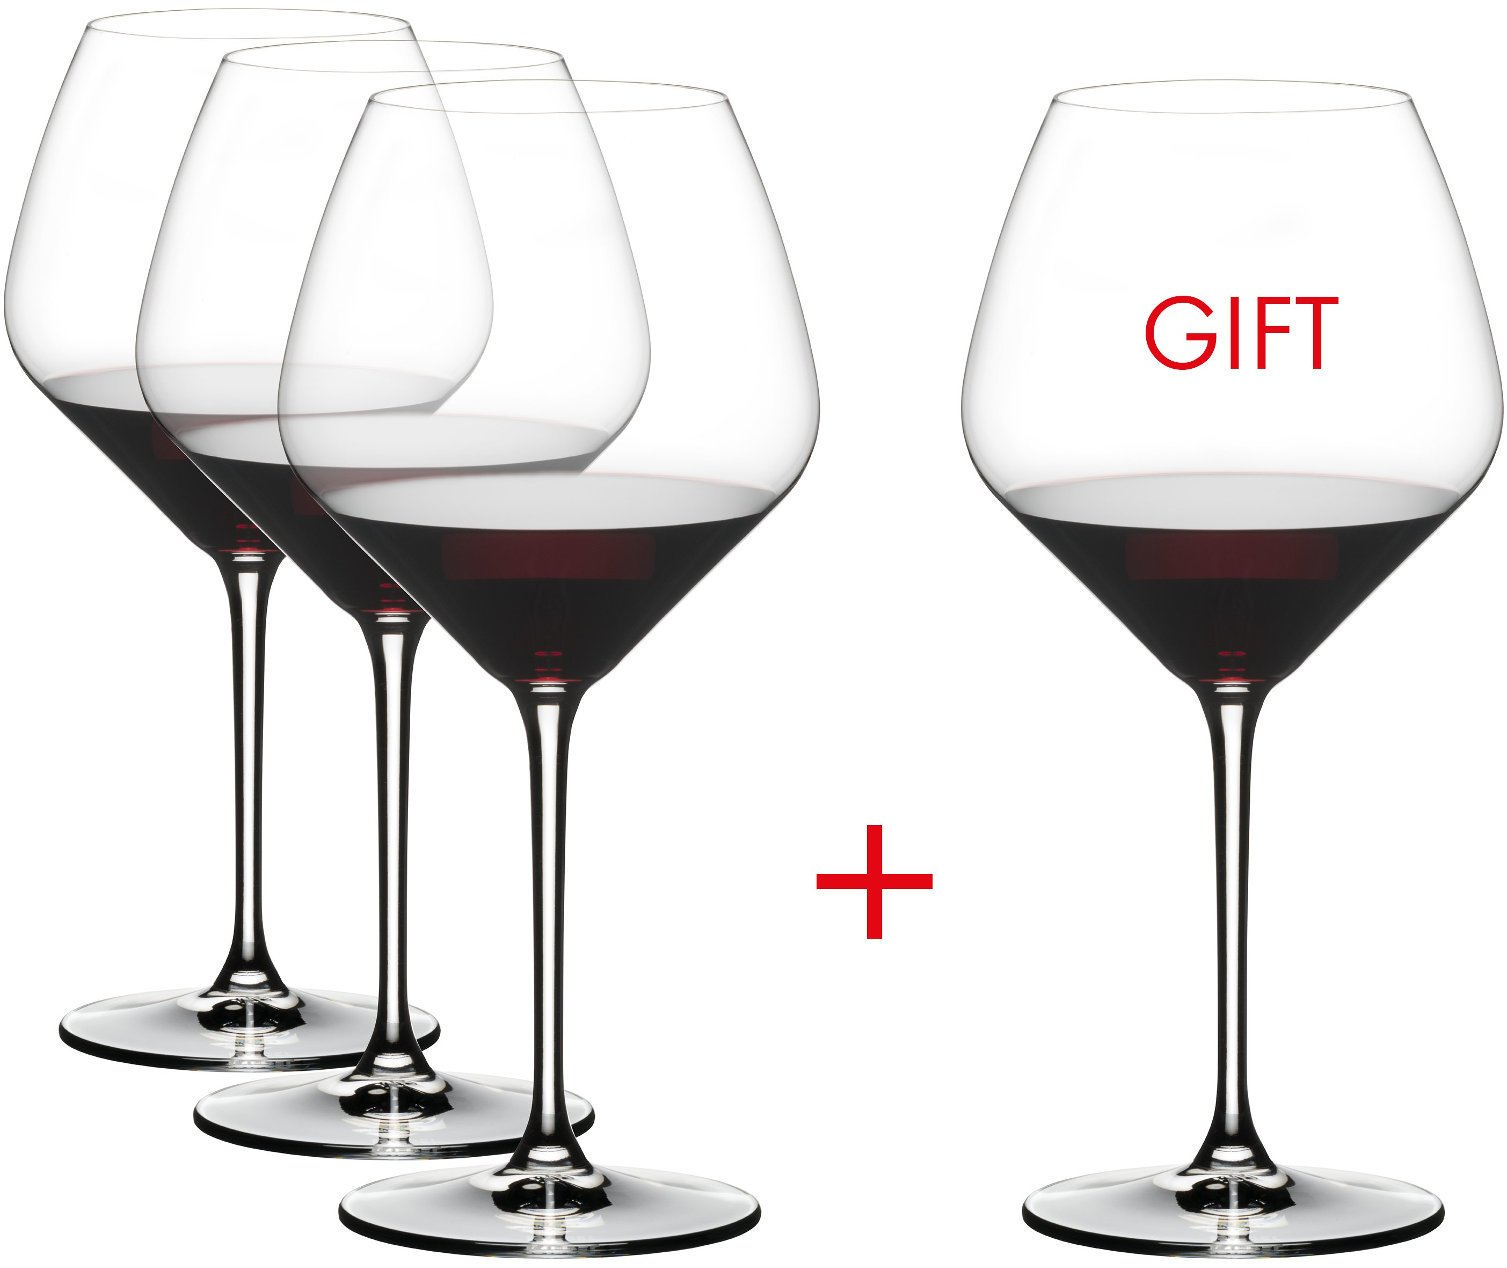 Riedel Extreme Crystal Pinot Noir Wine Glass, Buy 3 Get 4 Glasses by Riedel (Image #3)